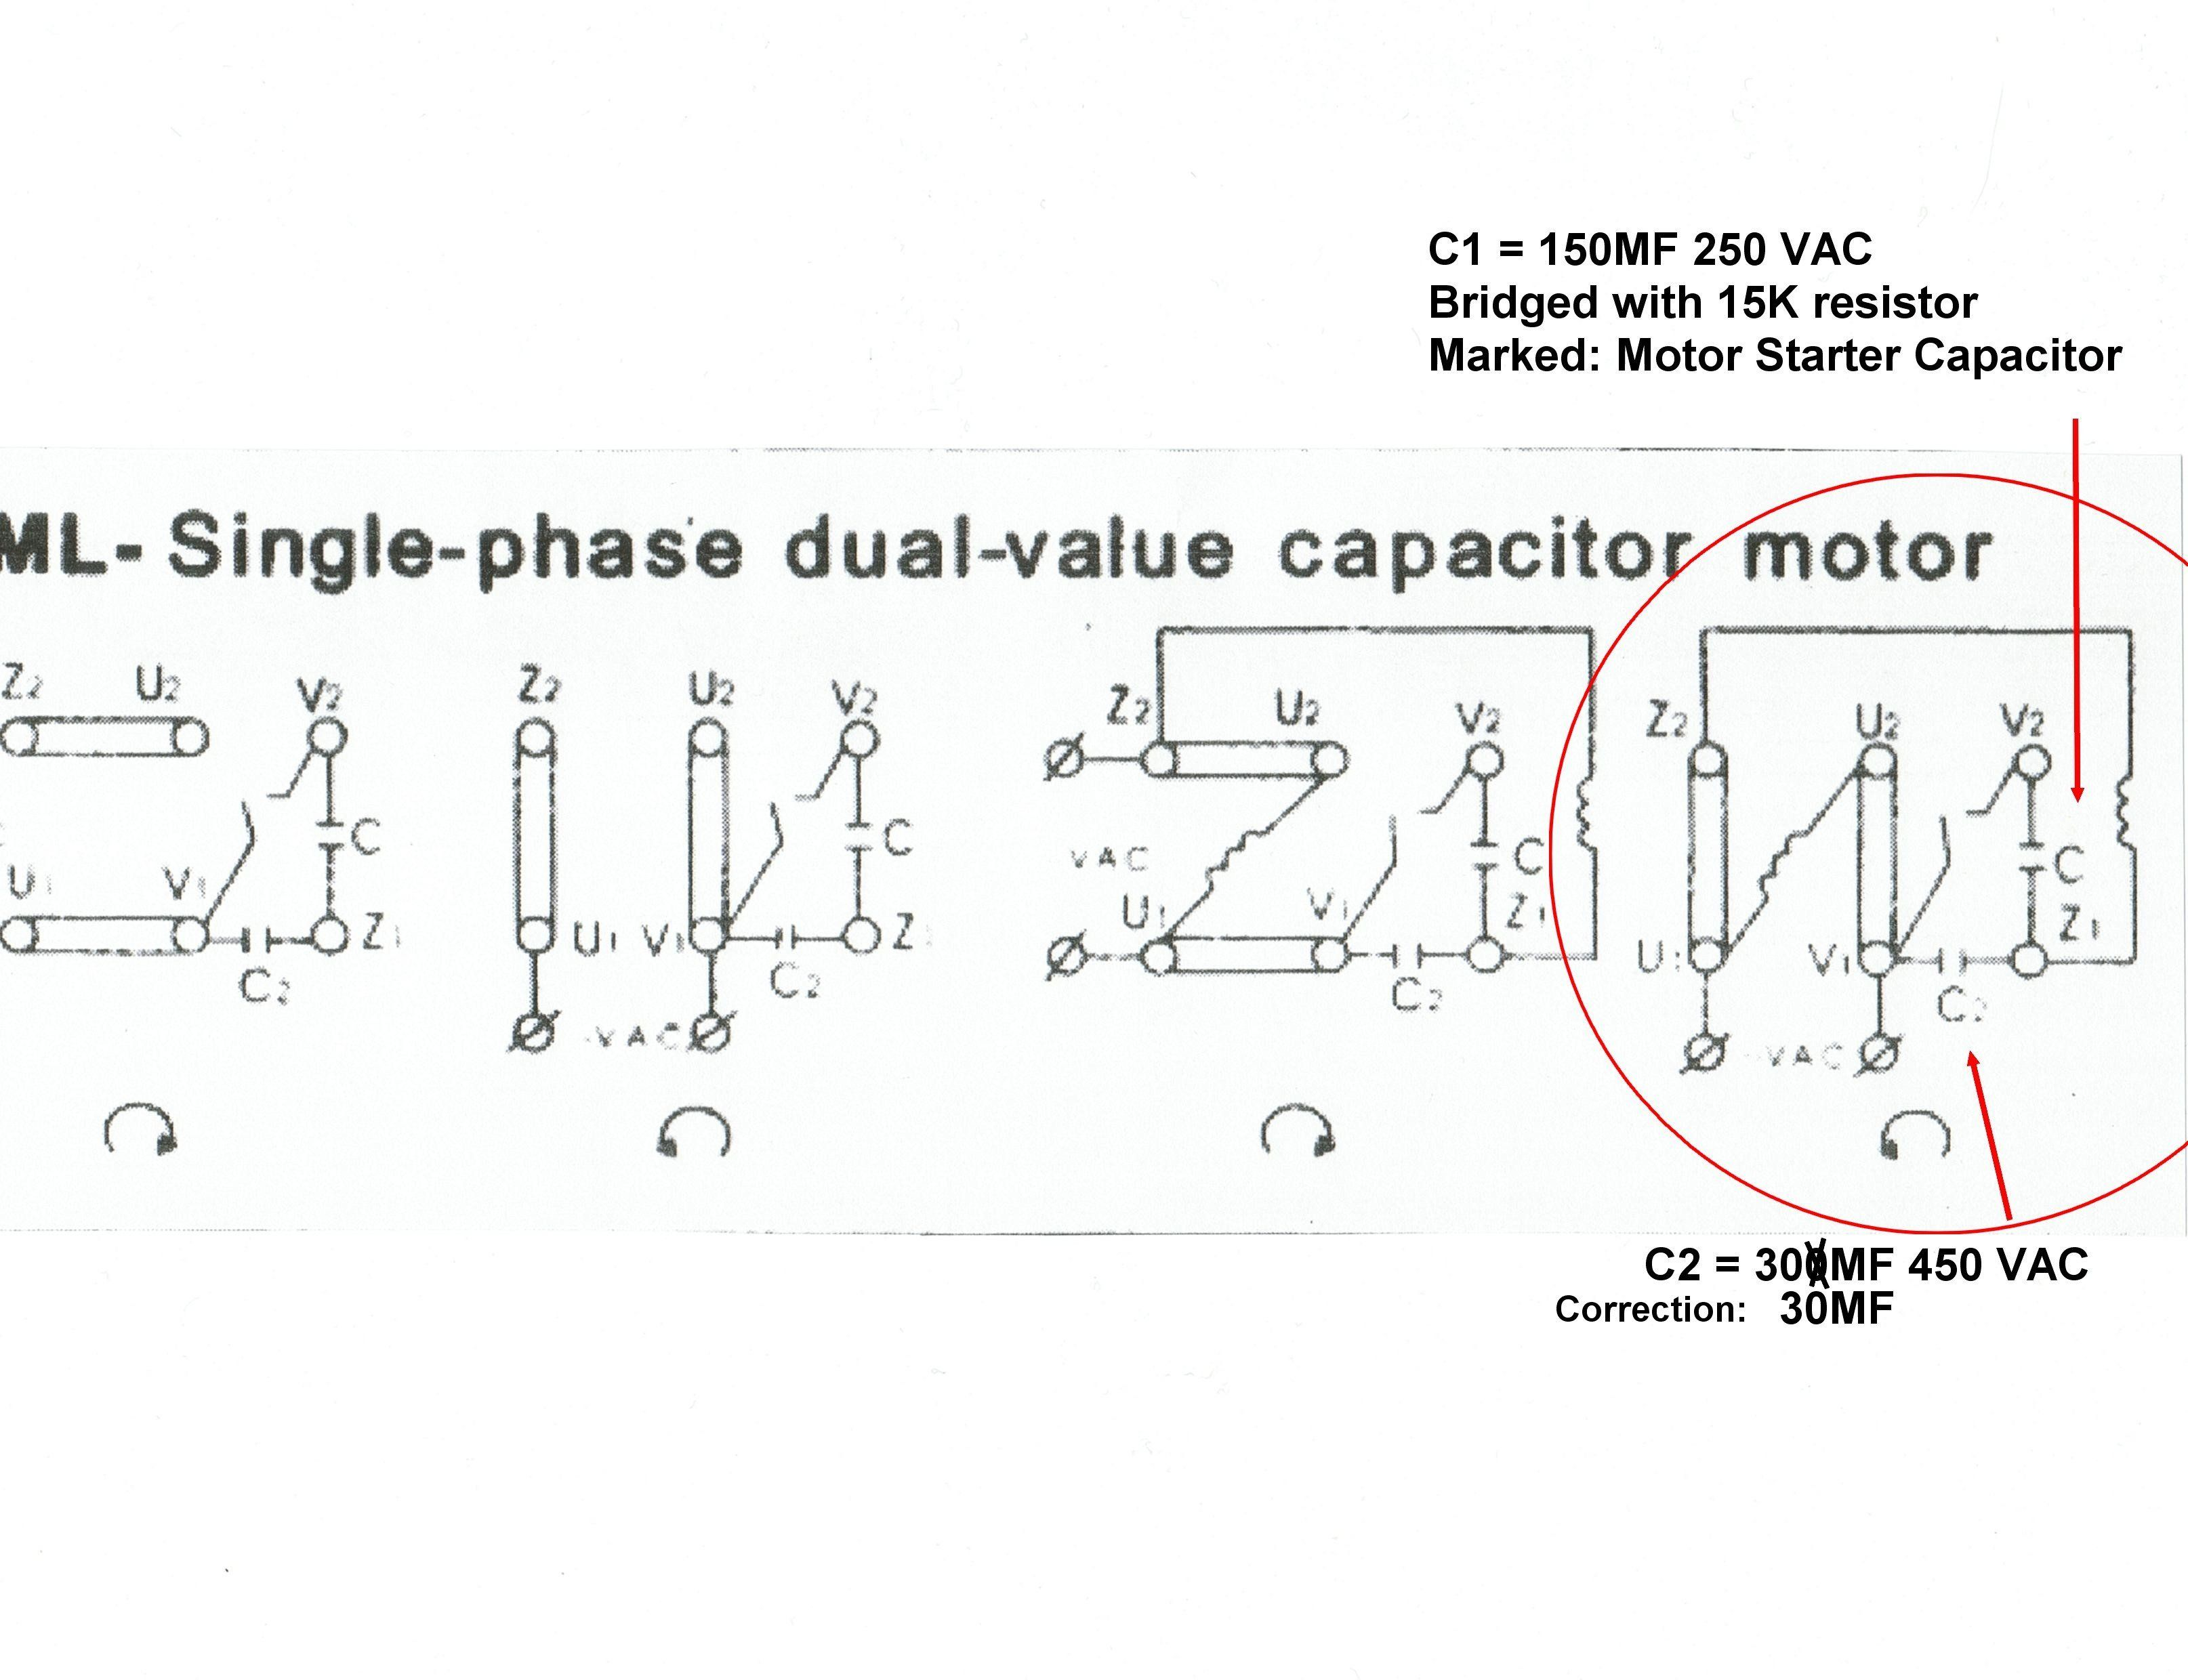 Wiring Diagram For 40 Volt Single Phase Motor ...